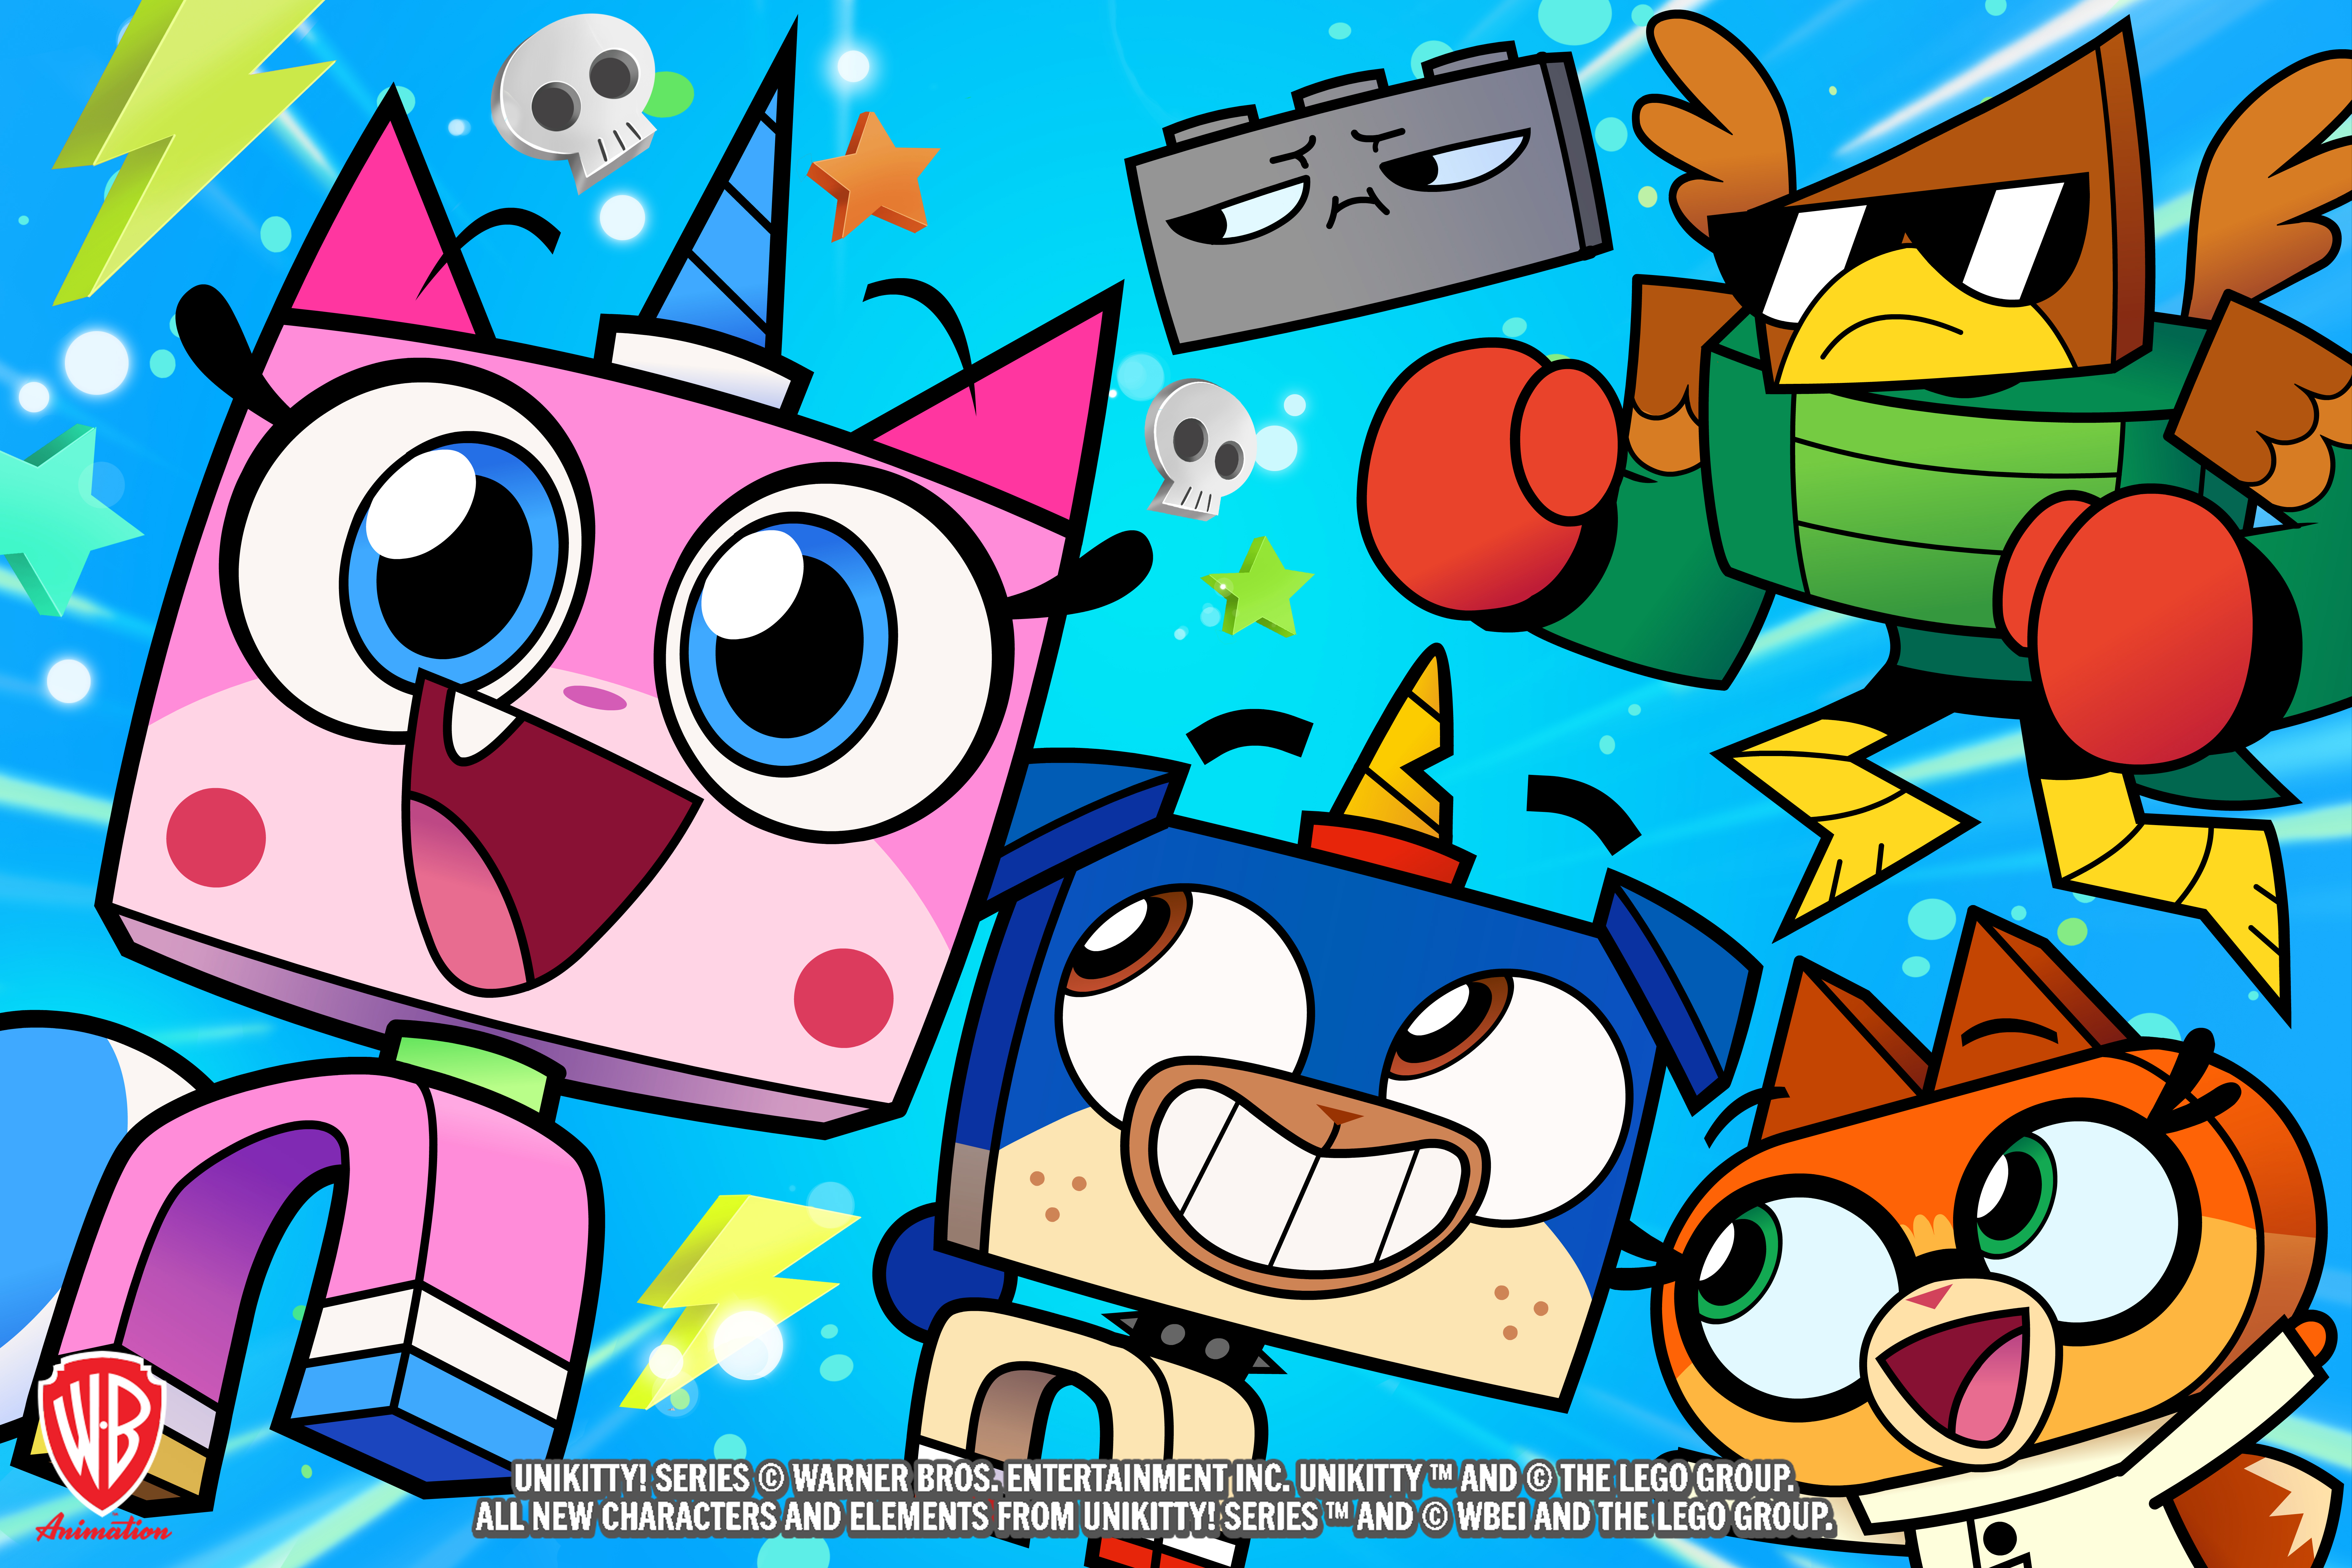 Unikitty Cartoon Network Orders New Series Based On Lego